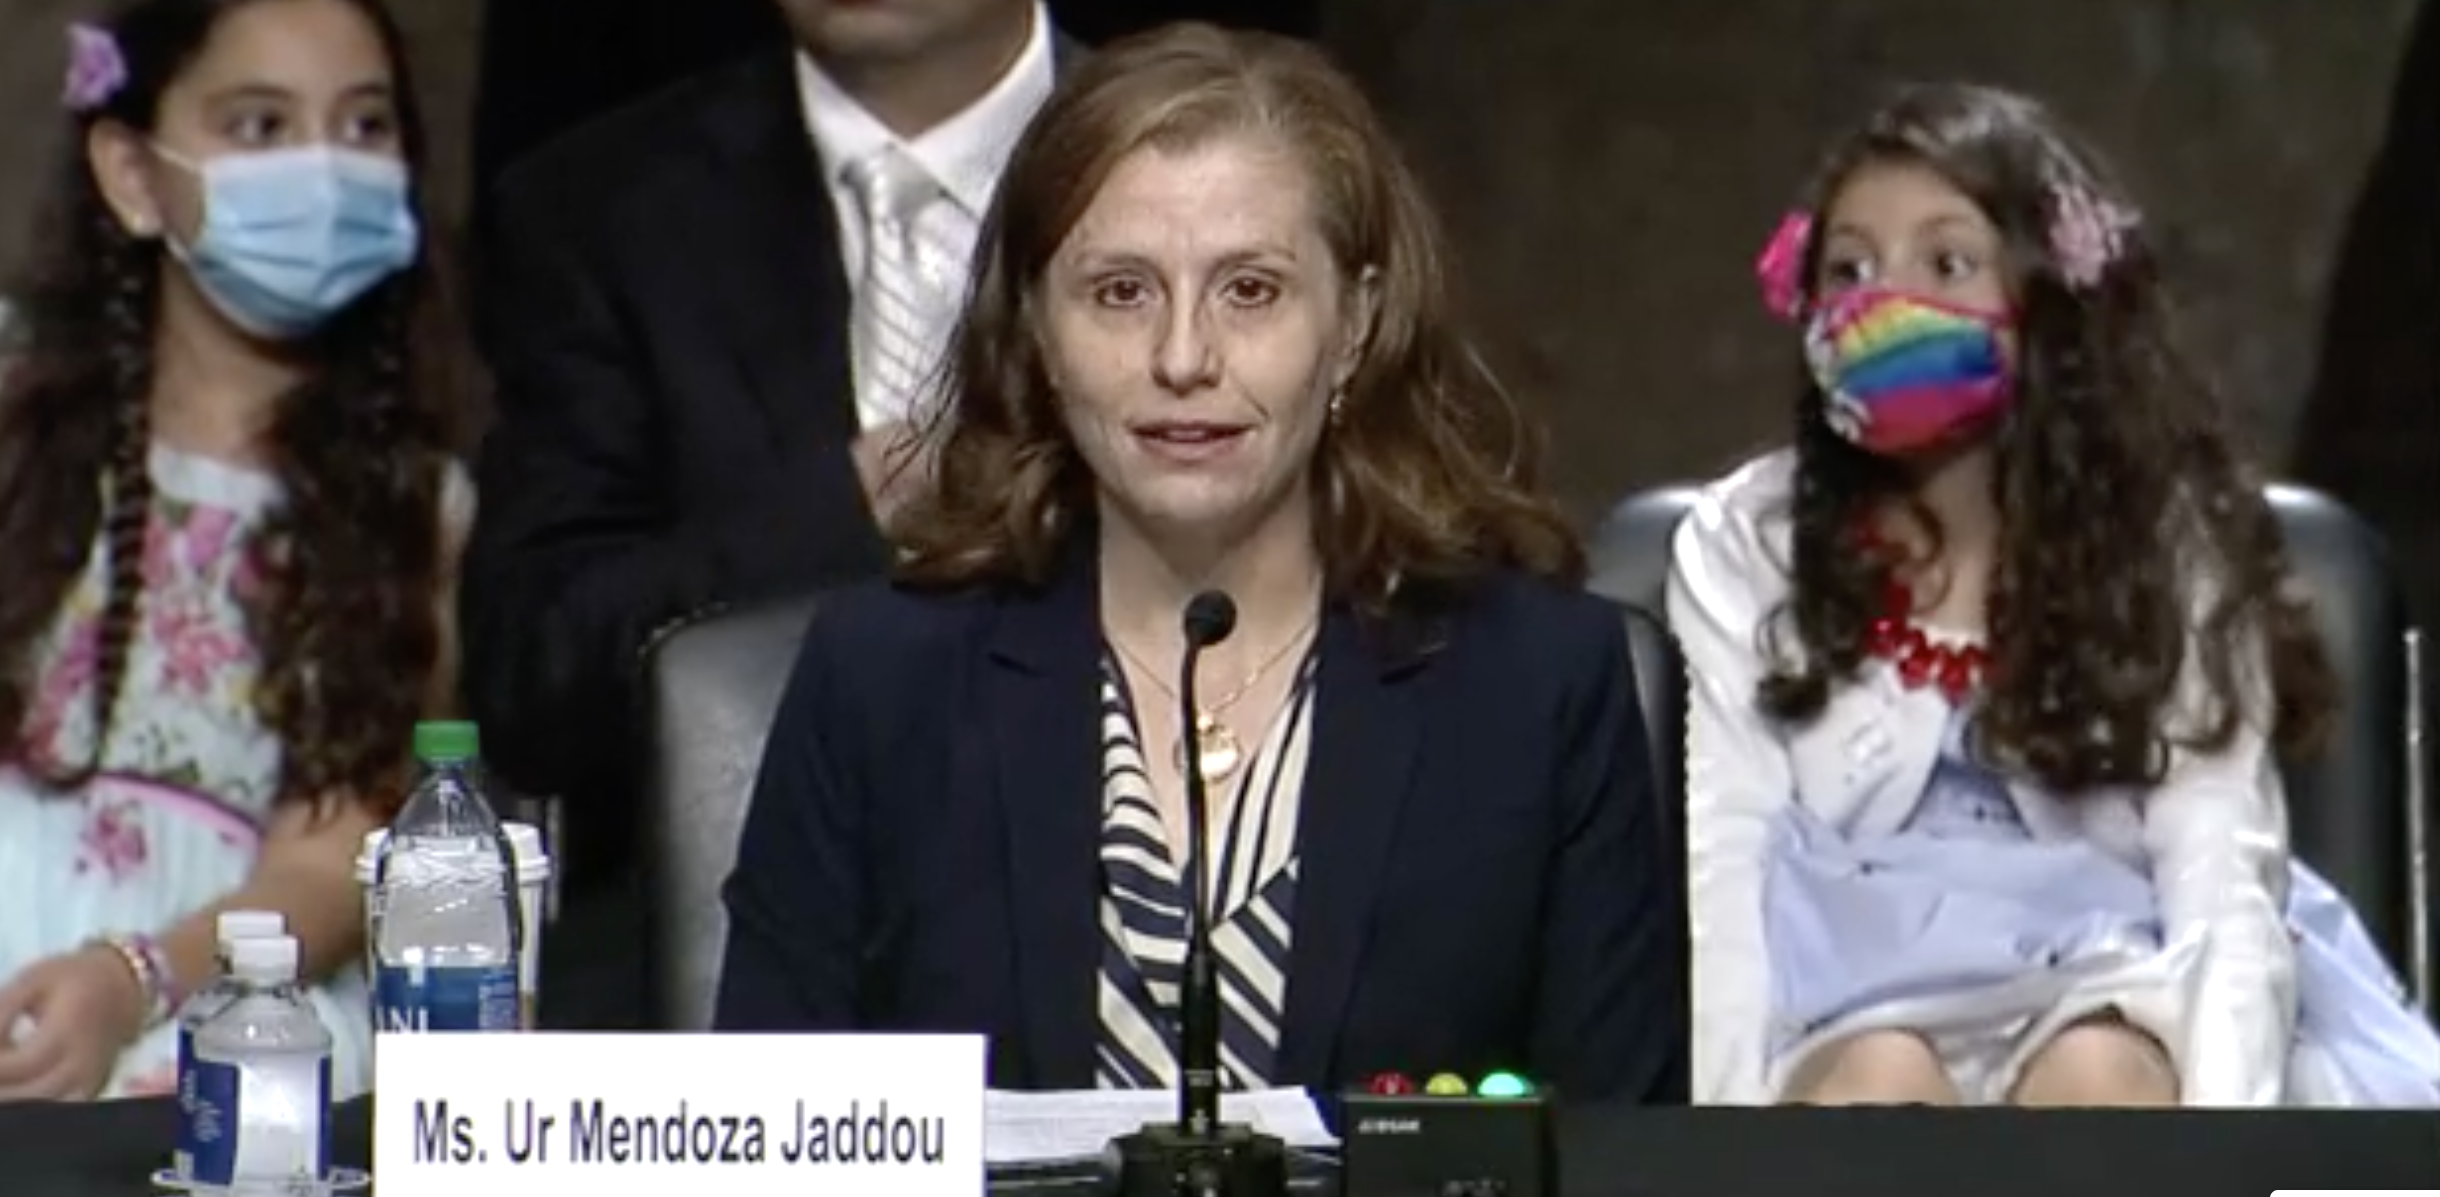 Ur Jaddou Becomes First Woman to Head USCIS - Boundless